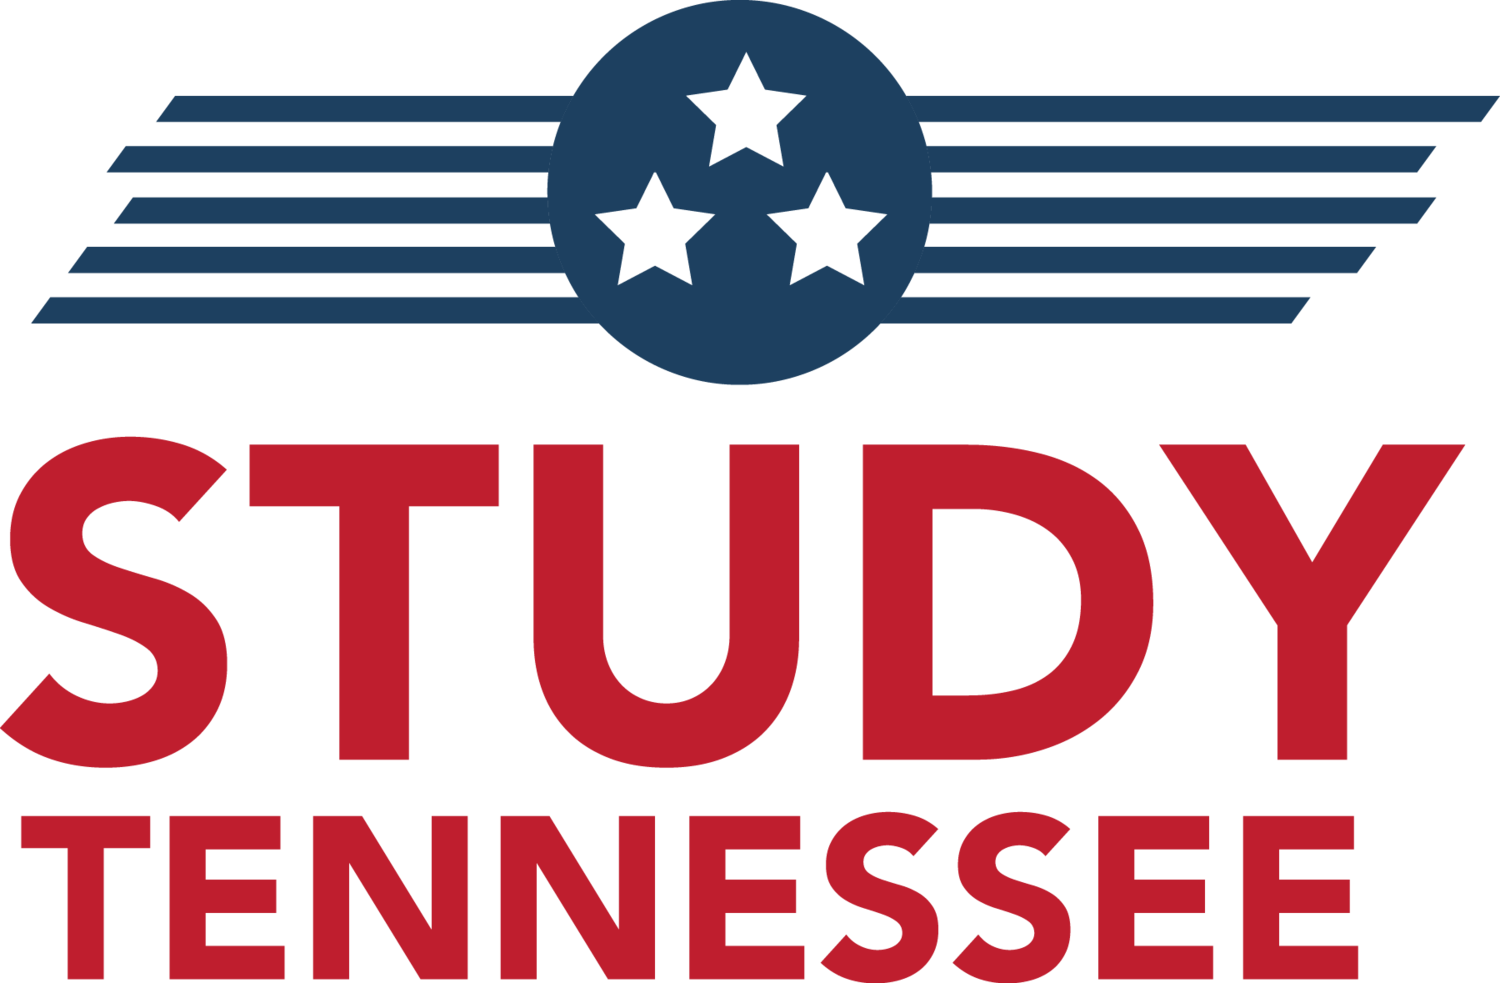 Tennessee drawing statehood. Stories from study